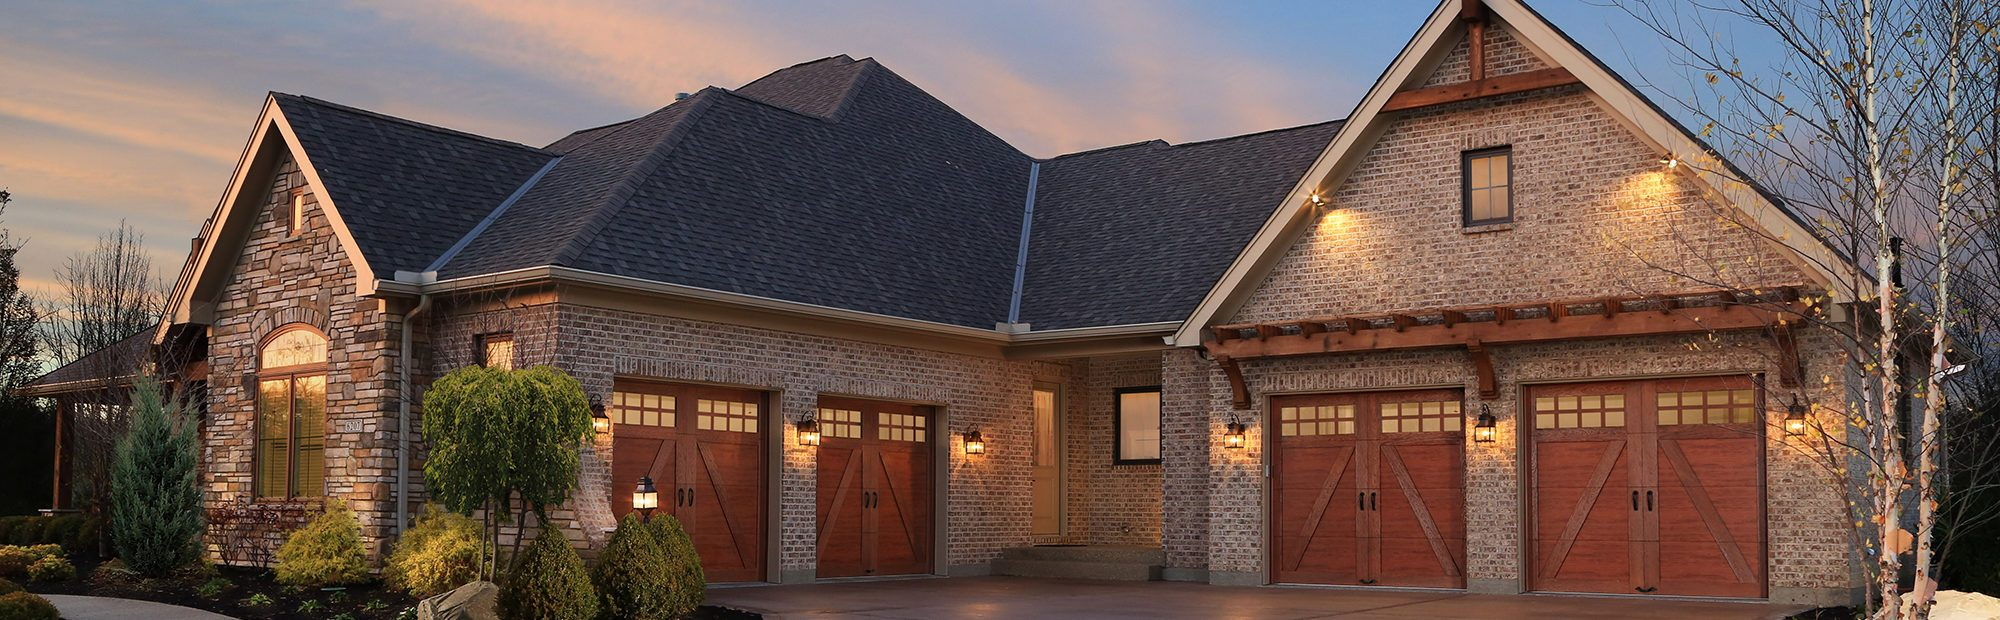 Your Garage Door Repair & Service Experts